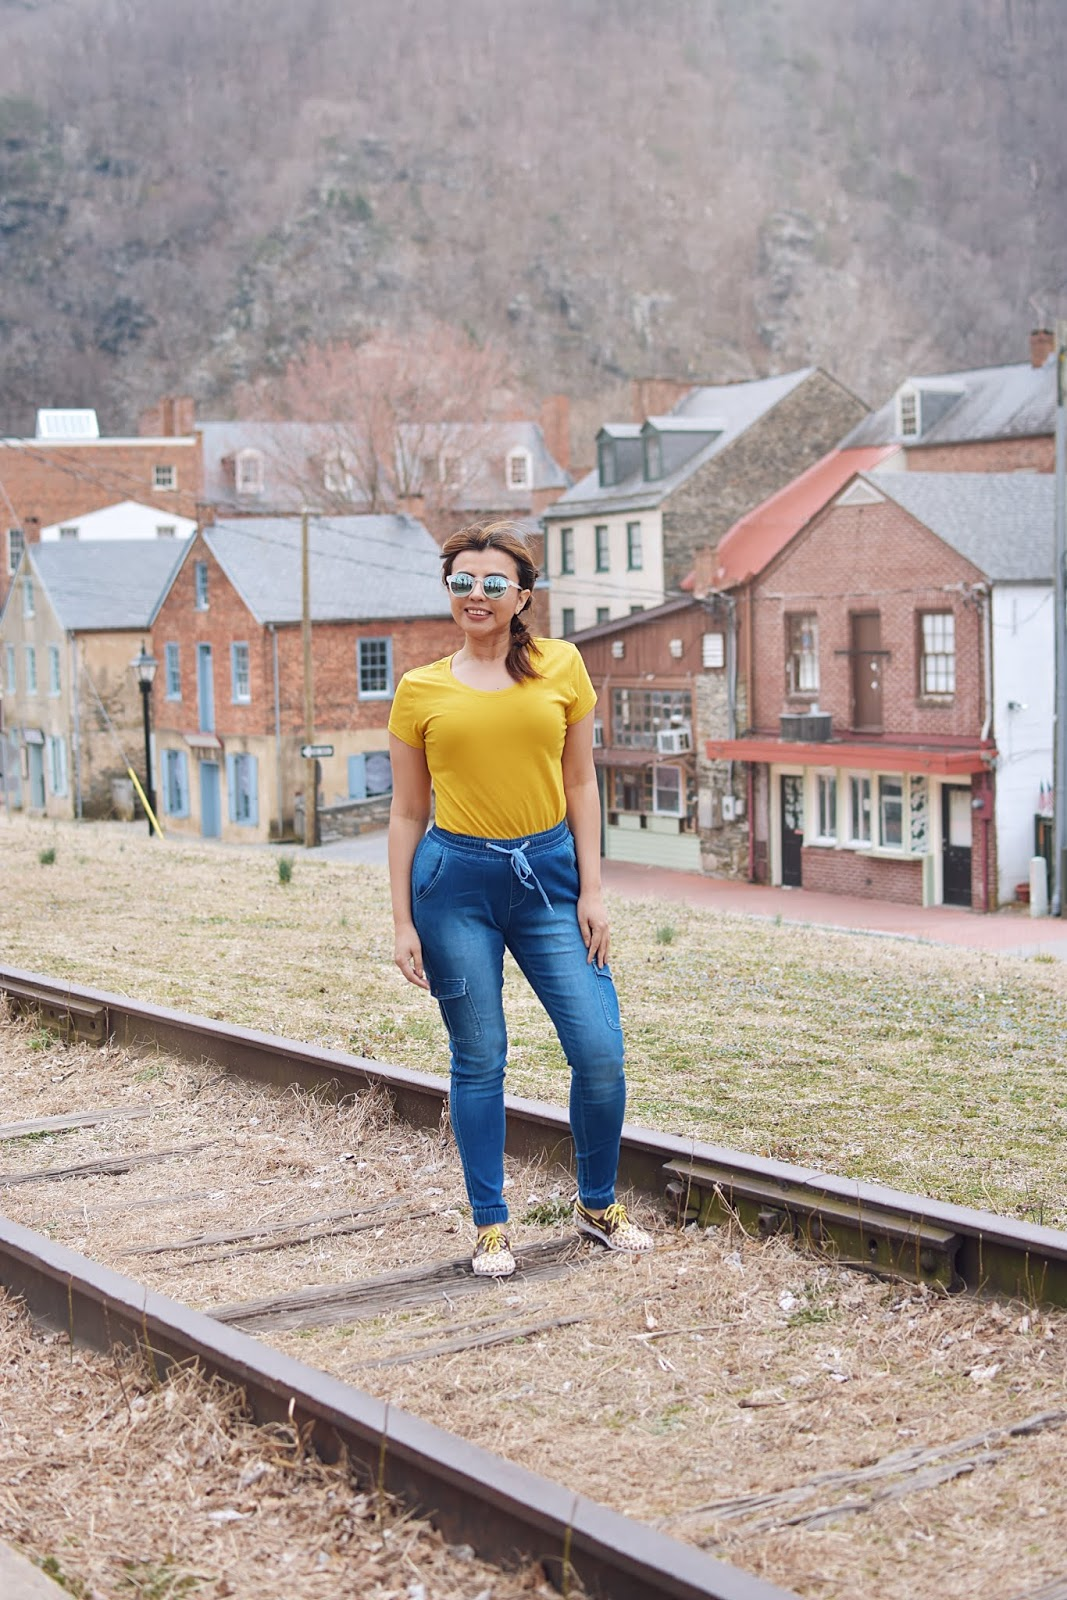 Skinny Jogger Pants - Neon Vibes-mom jeans-lookbook-fashionblogger-dcblogger-travelblogger-west virginia-harpers ferry-viajeros en internet-bloggerstyle-